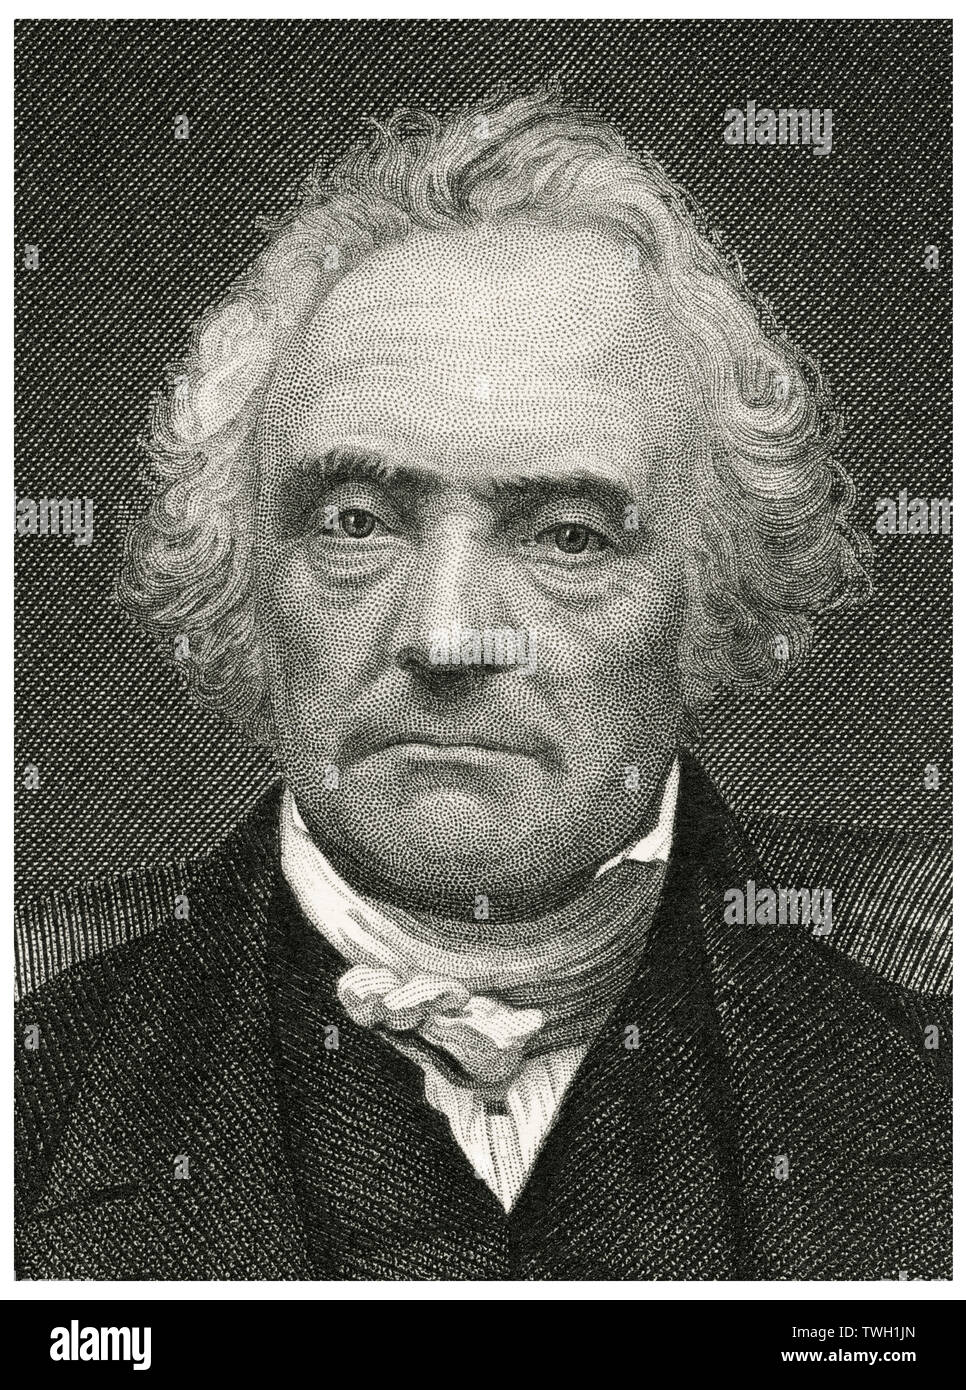 Thomas Chalmers (1780-1847), Scottish minister, professor of theology, political economist, and a leader of both the Church of Scotland and of the Free Church of Scotland, Head and Shoulders Portrait, Steel Engraving, Portrait Gallery of Eminent Men and Women of Europe and America by Evert A. Duyckinck, Published by Henry J. Johnson, Johnson, Wilson & Company, New York, 1873 - Stock Image